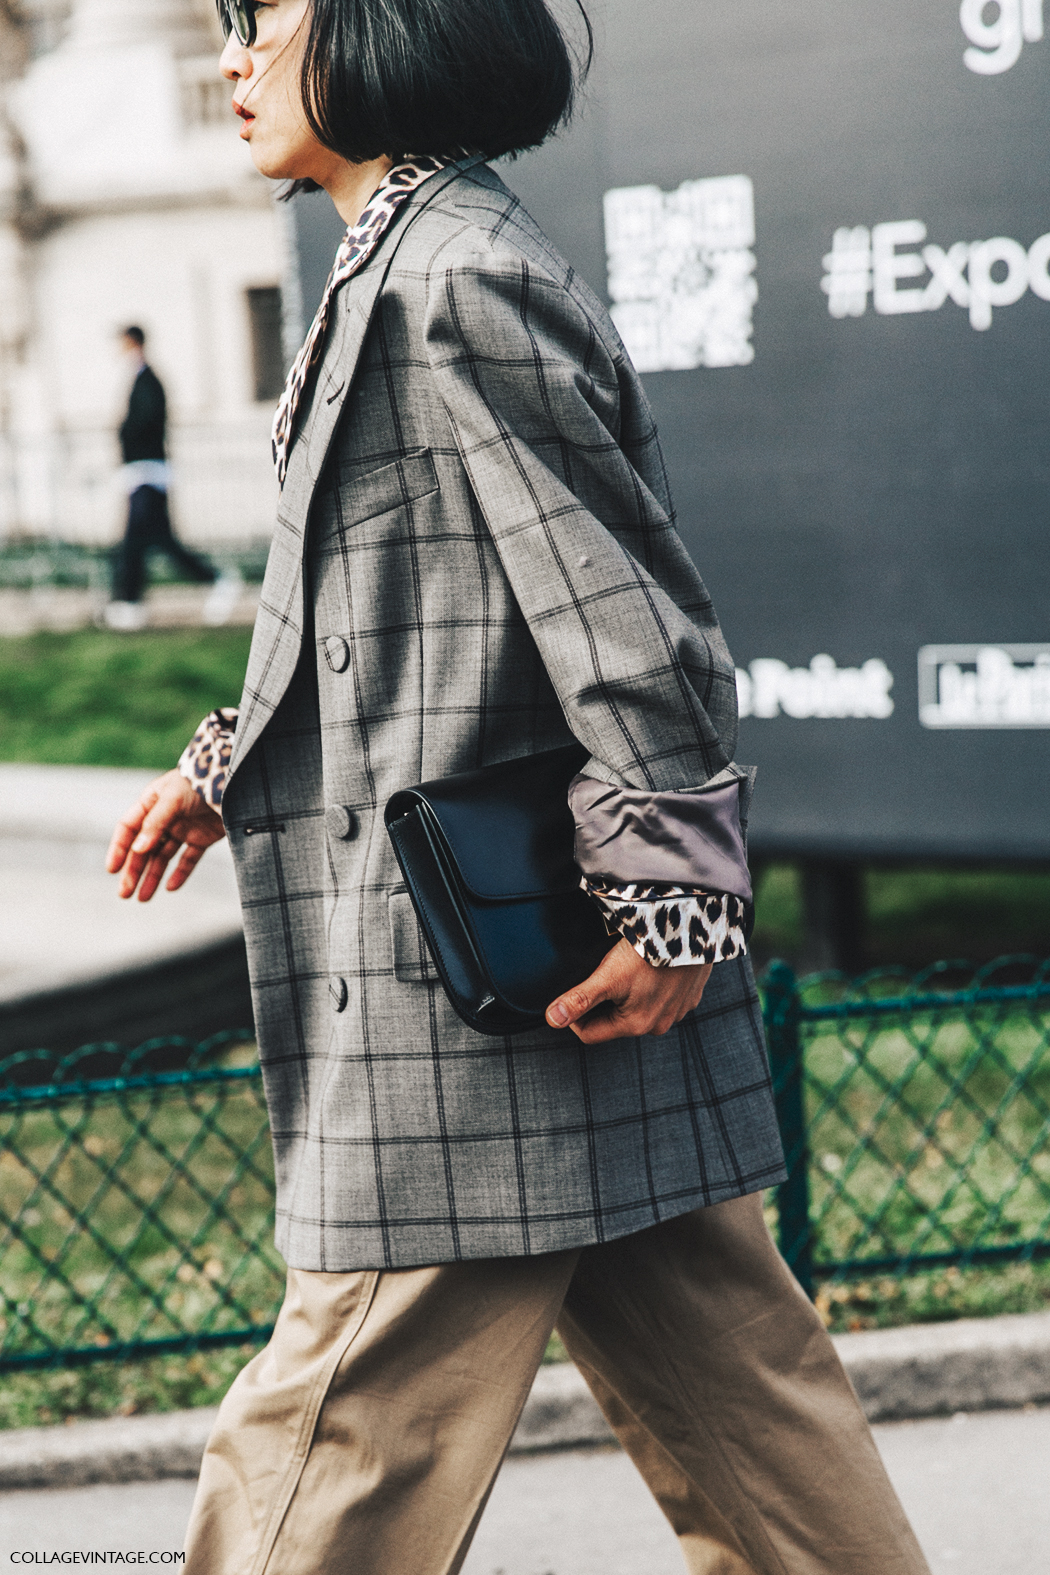 PFW-Paris_Fashion_Week_Fall_2016-Street_Style-Collage_Vintage-Oversize_Blazer-Celine_Box-1